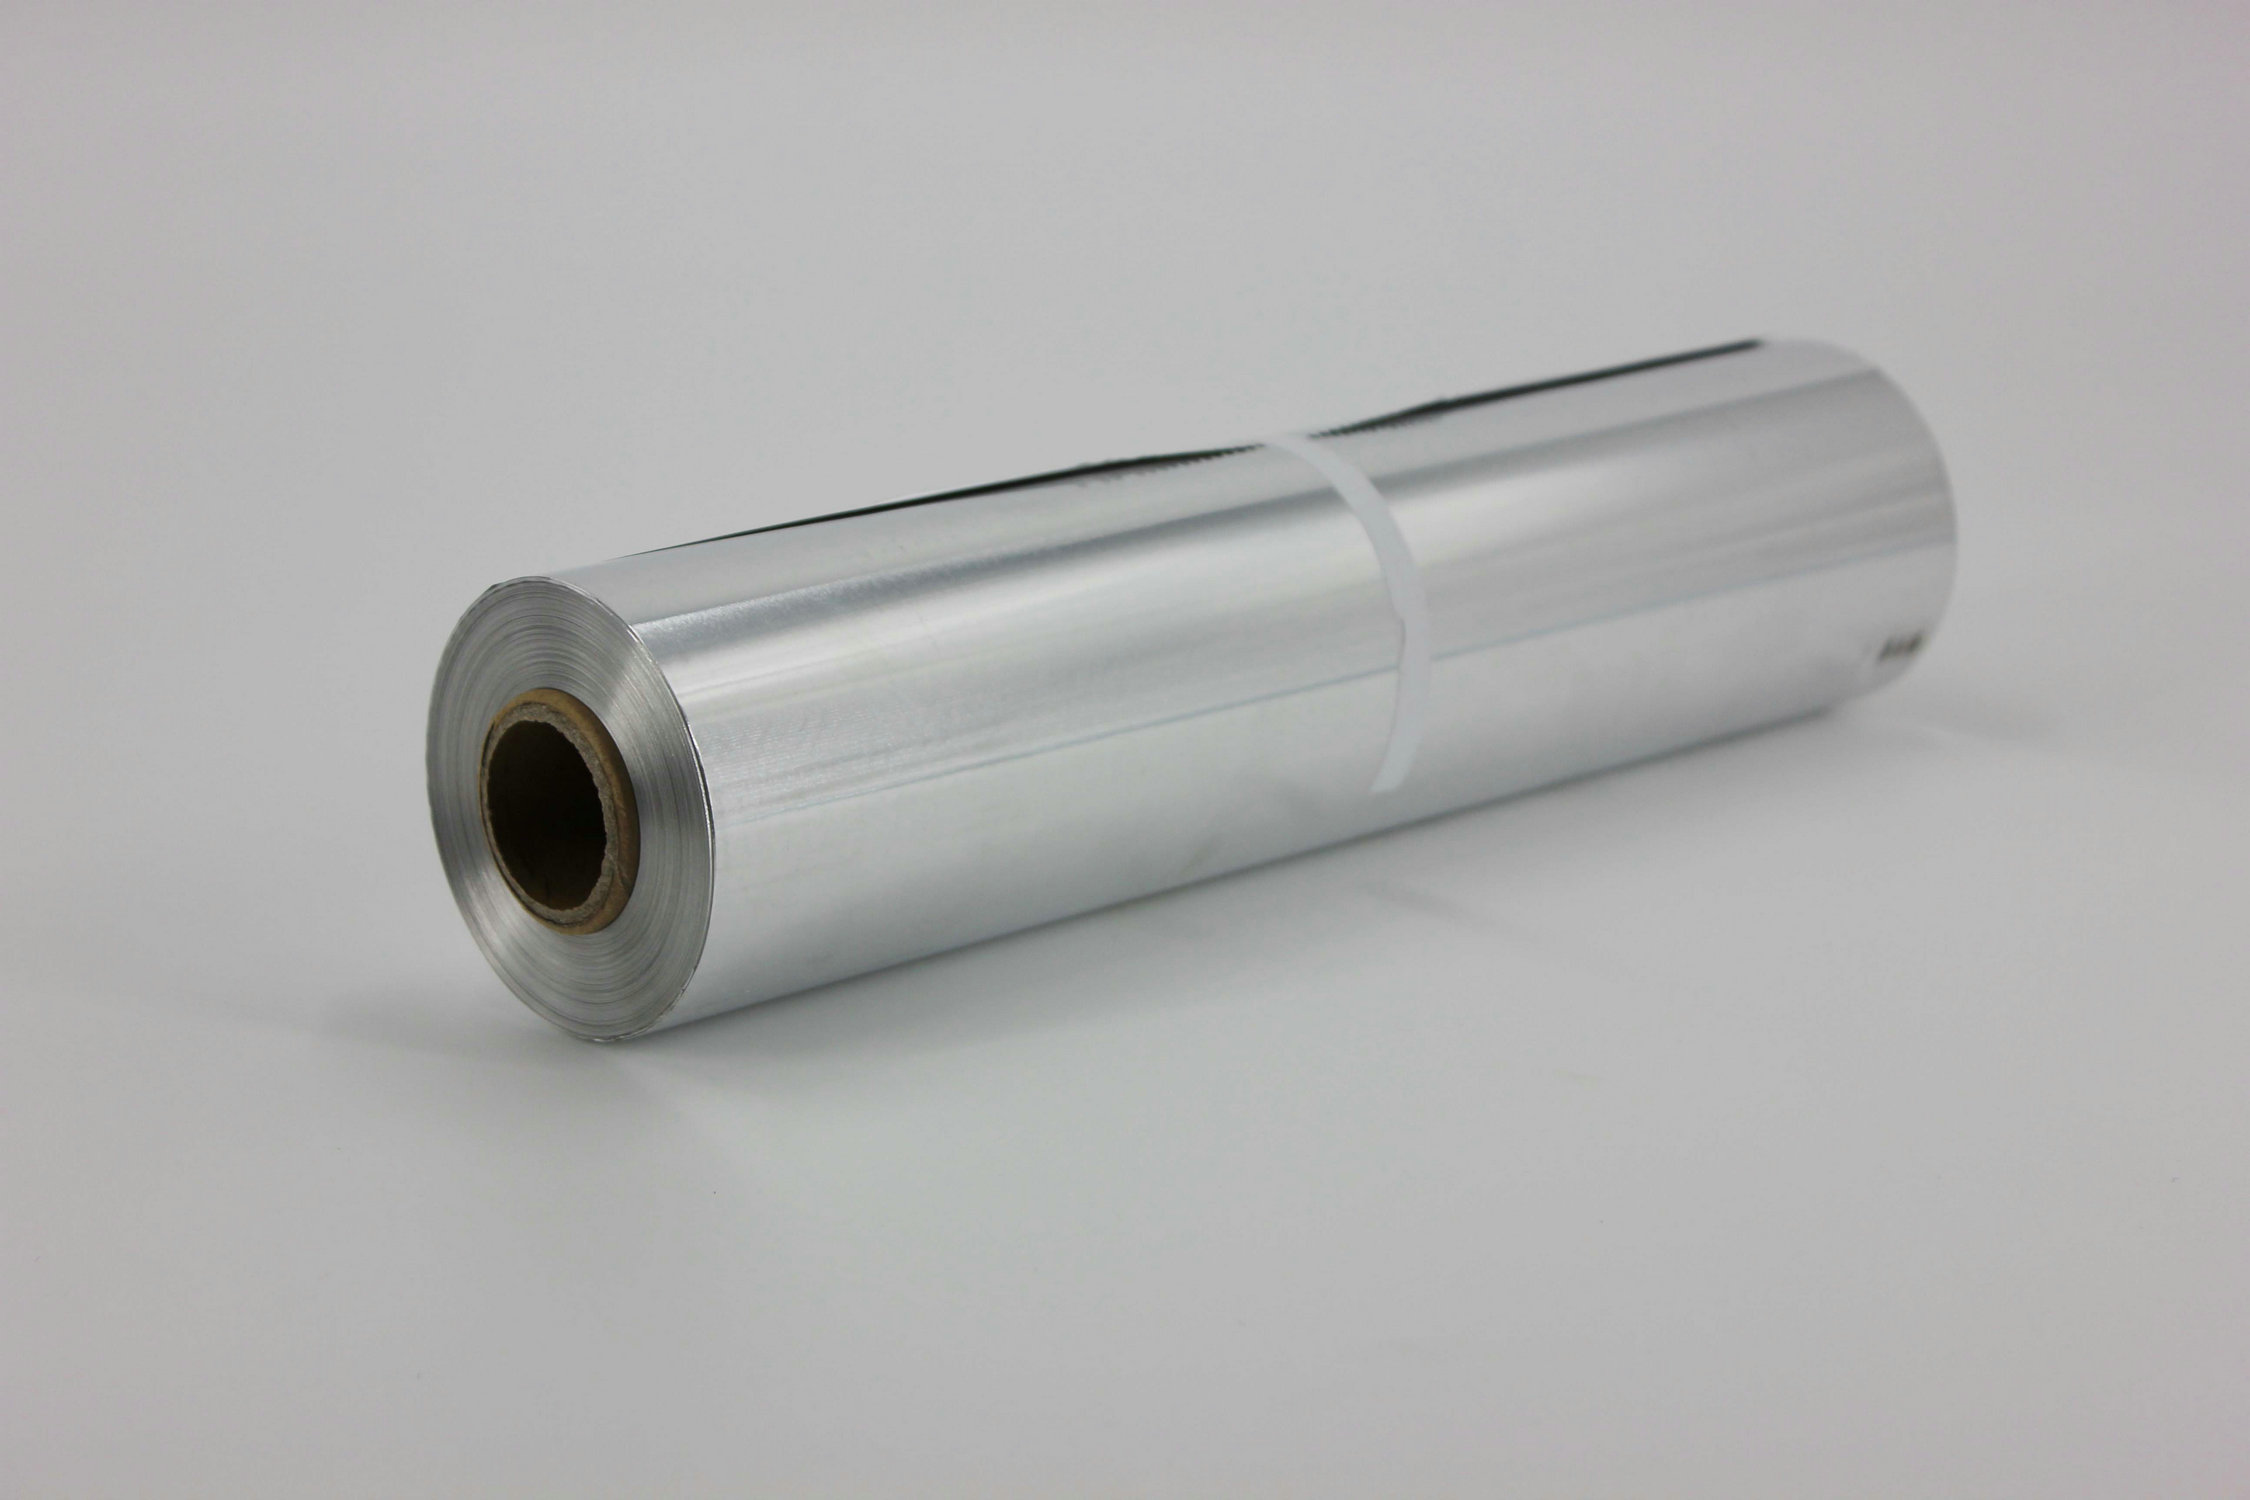 Core siliconvalley a1423 high temperature aluminum foil foil foil barbecue oven with aluminum foil aluminum foil roll film roll greaseproof paper